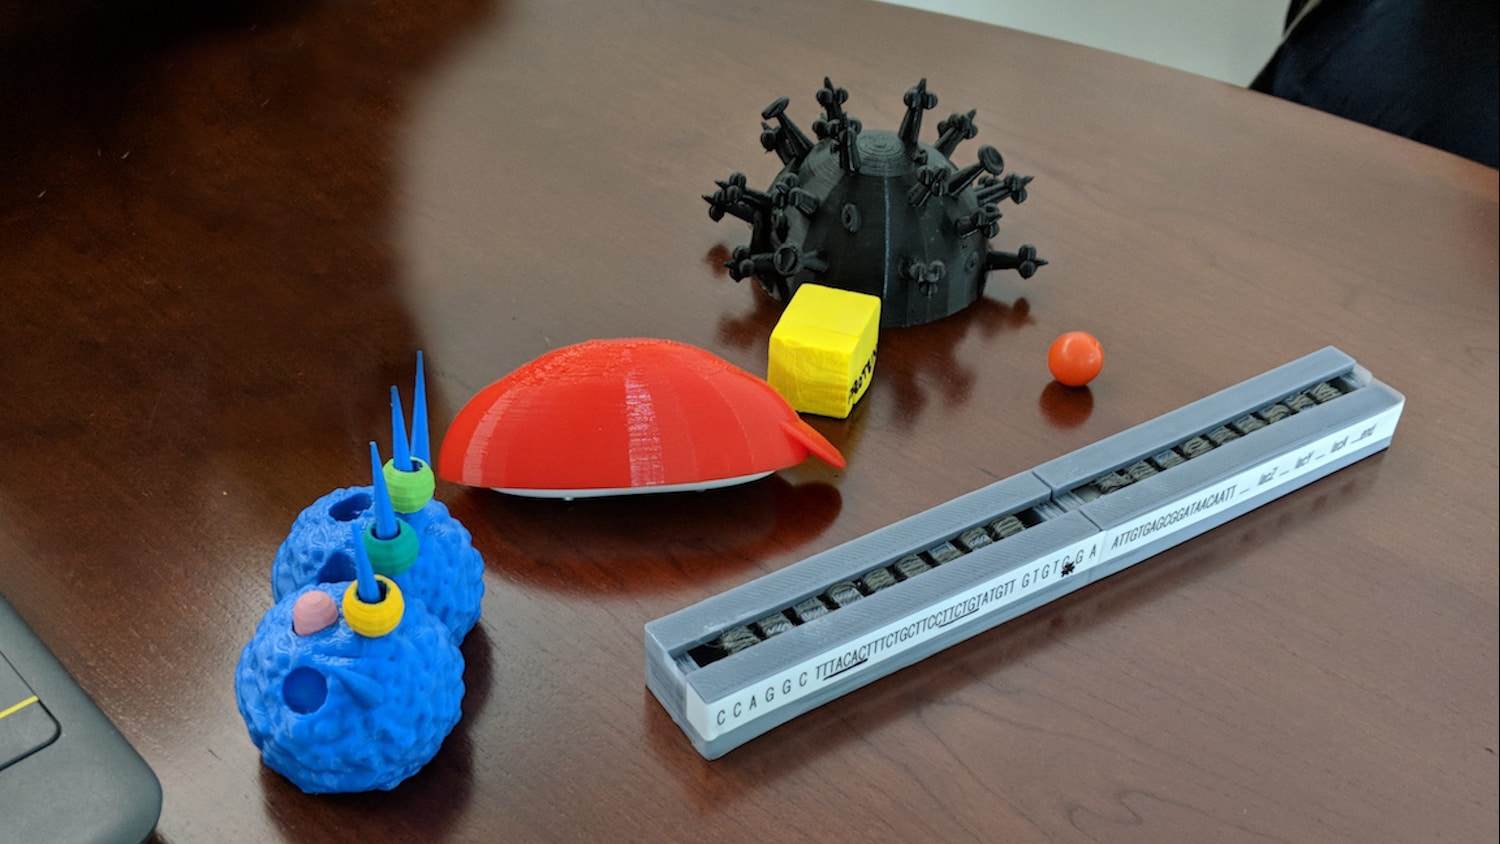 STEM learning items on a desk